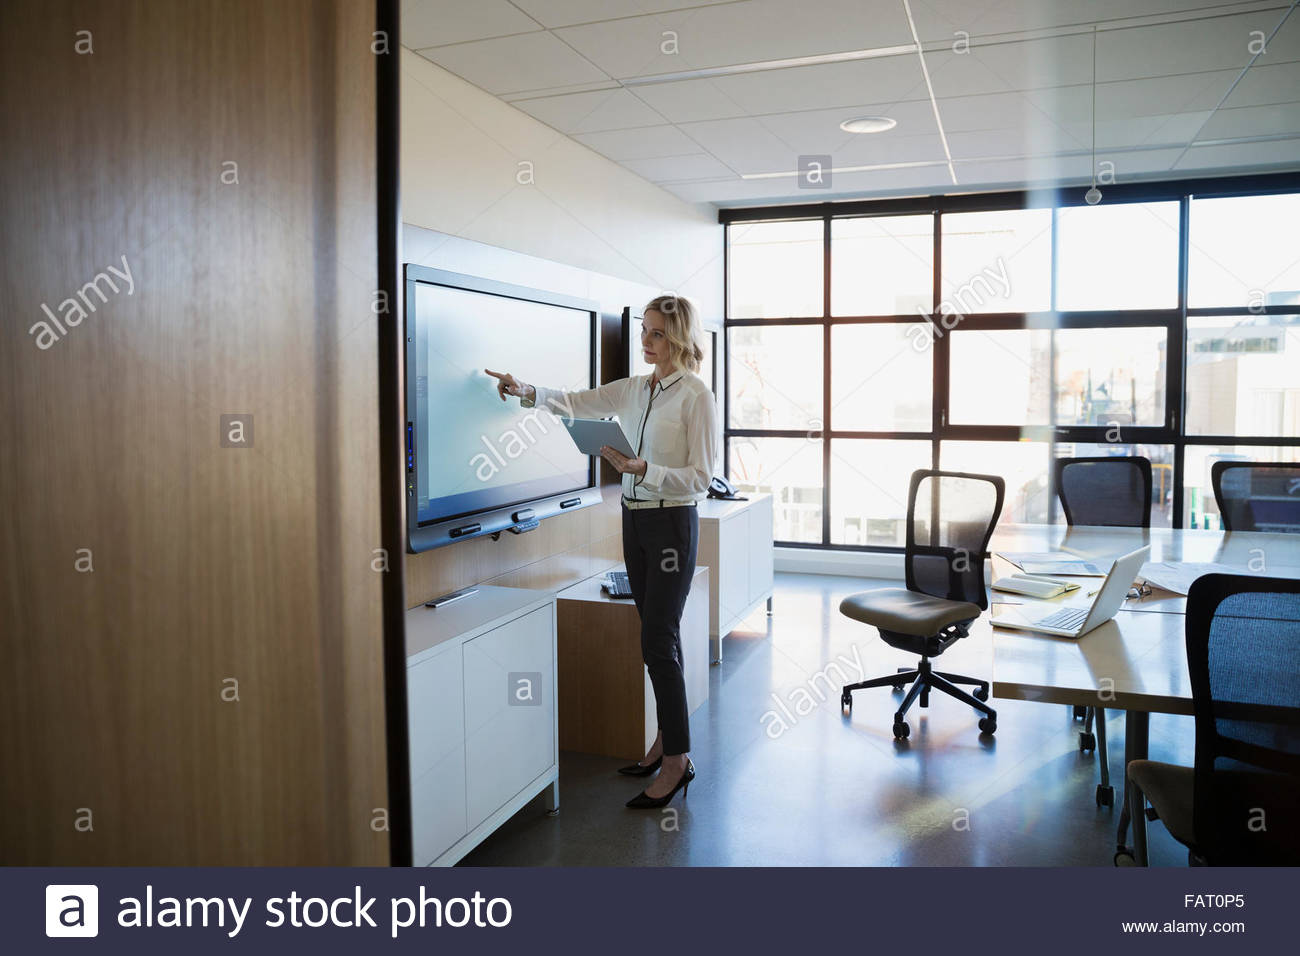 Businesswoman digital tablet using touch screen conference room - Stock Image